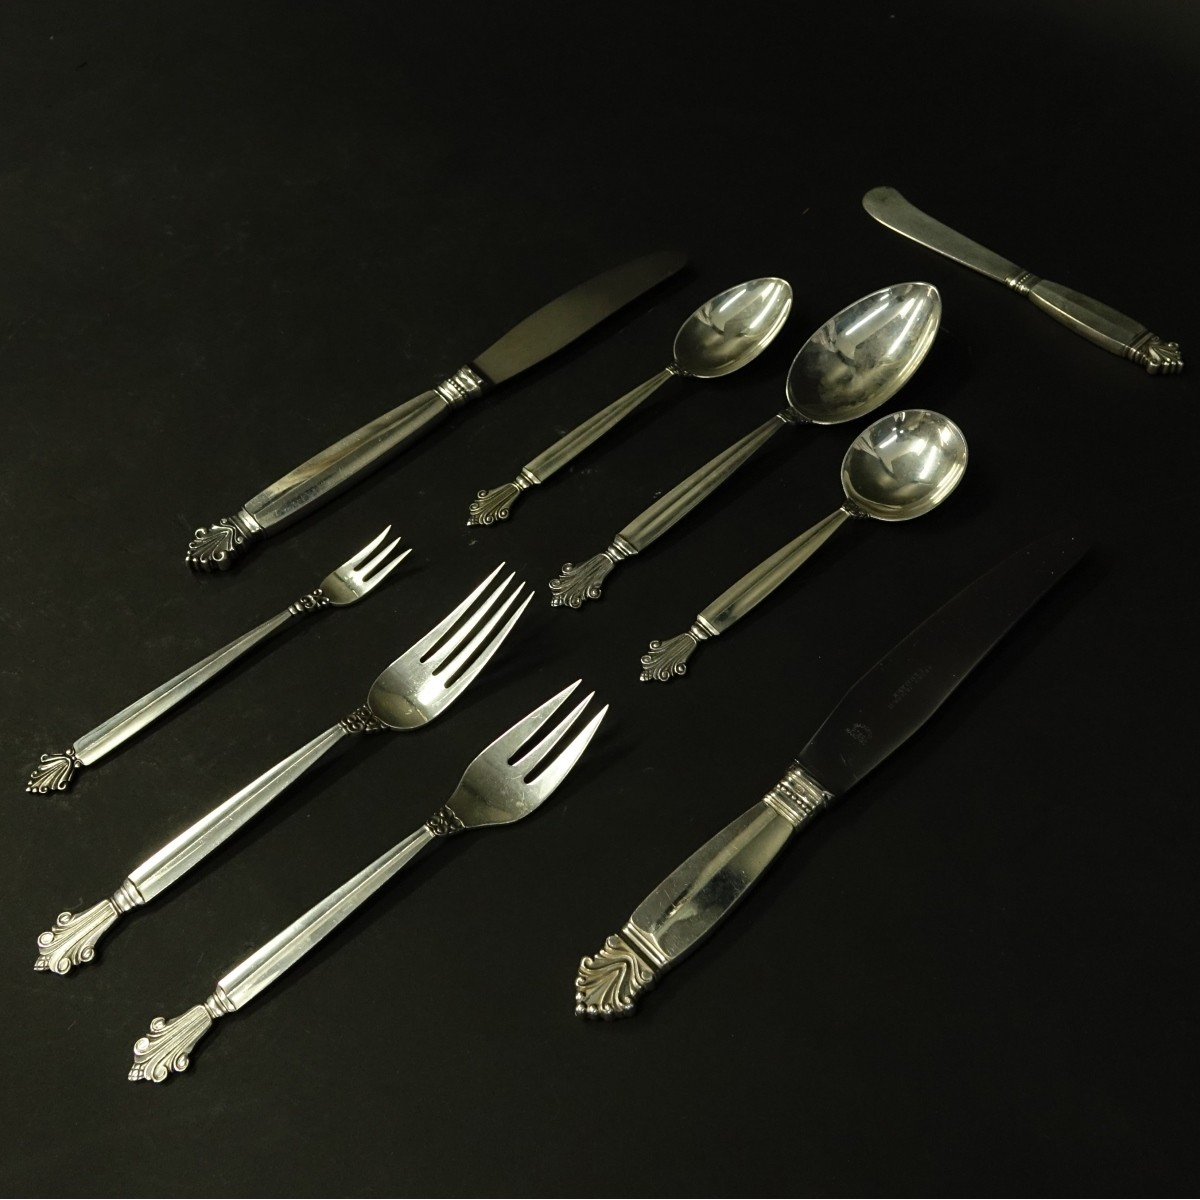 156 Pieces Georg Jensen Acanthus Flatware